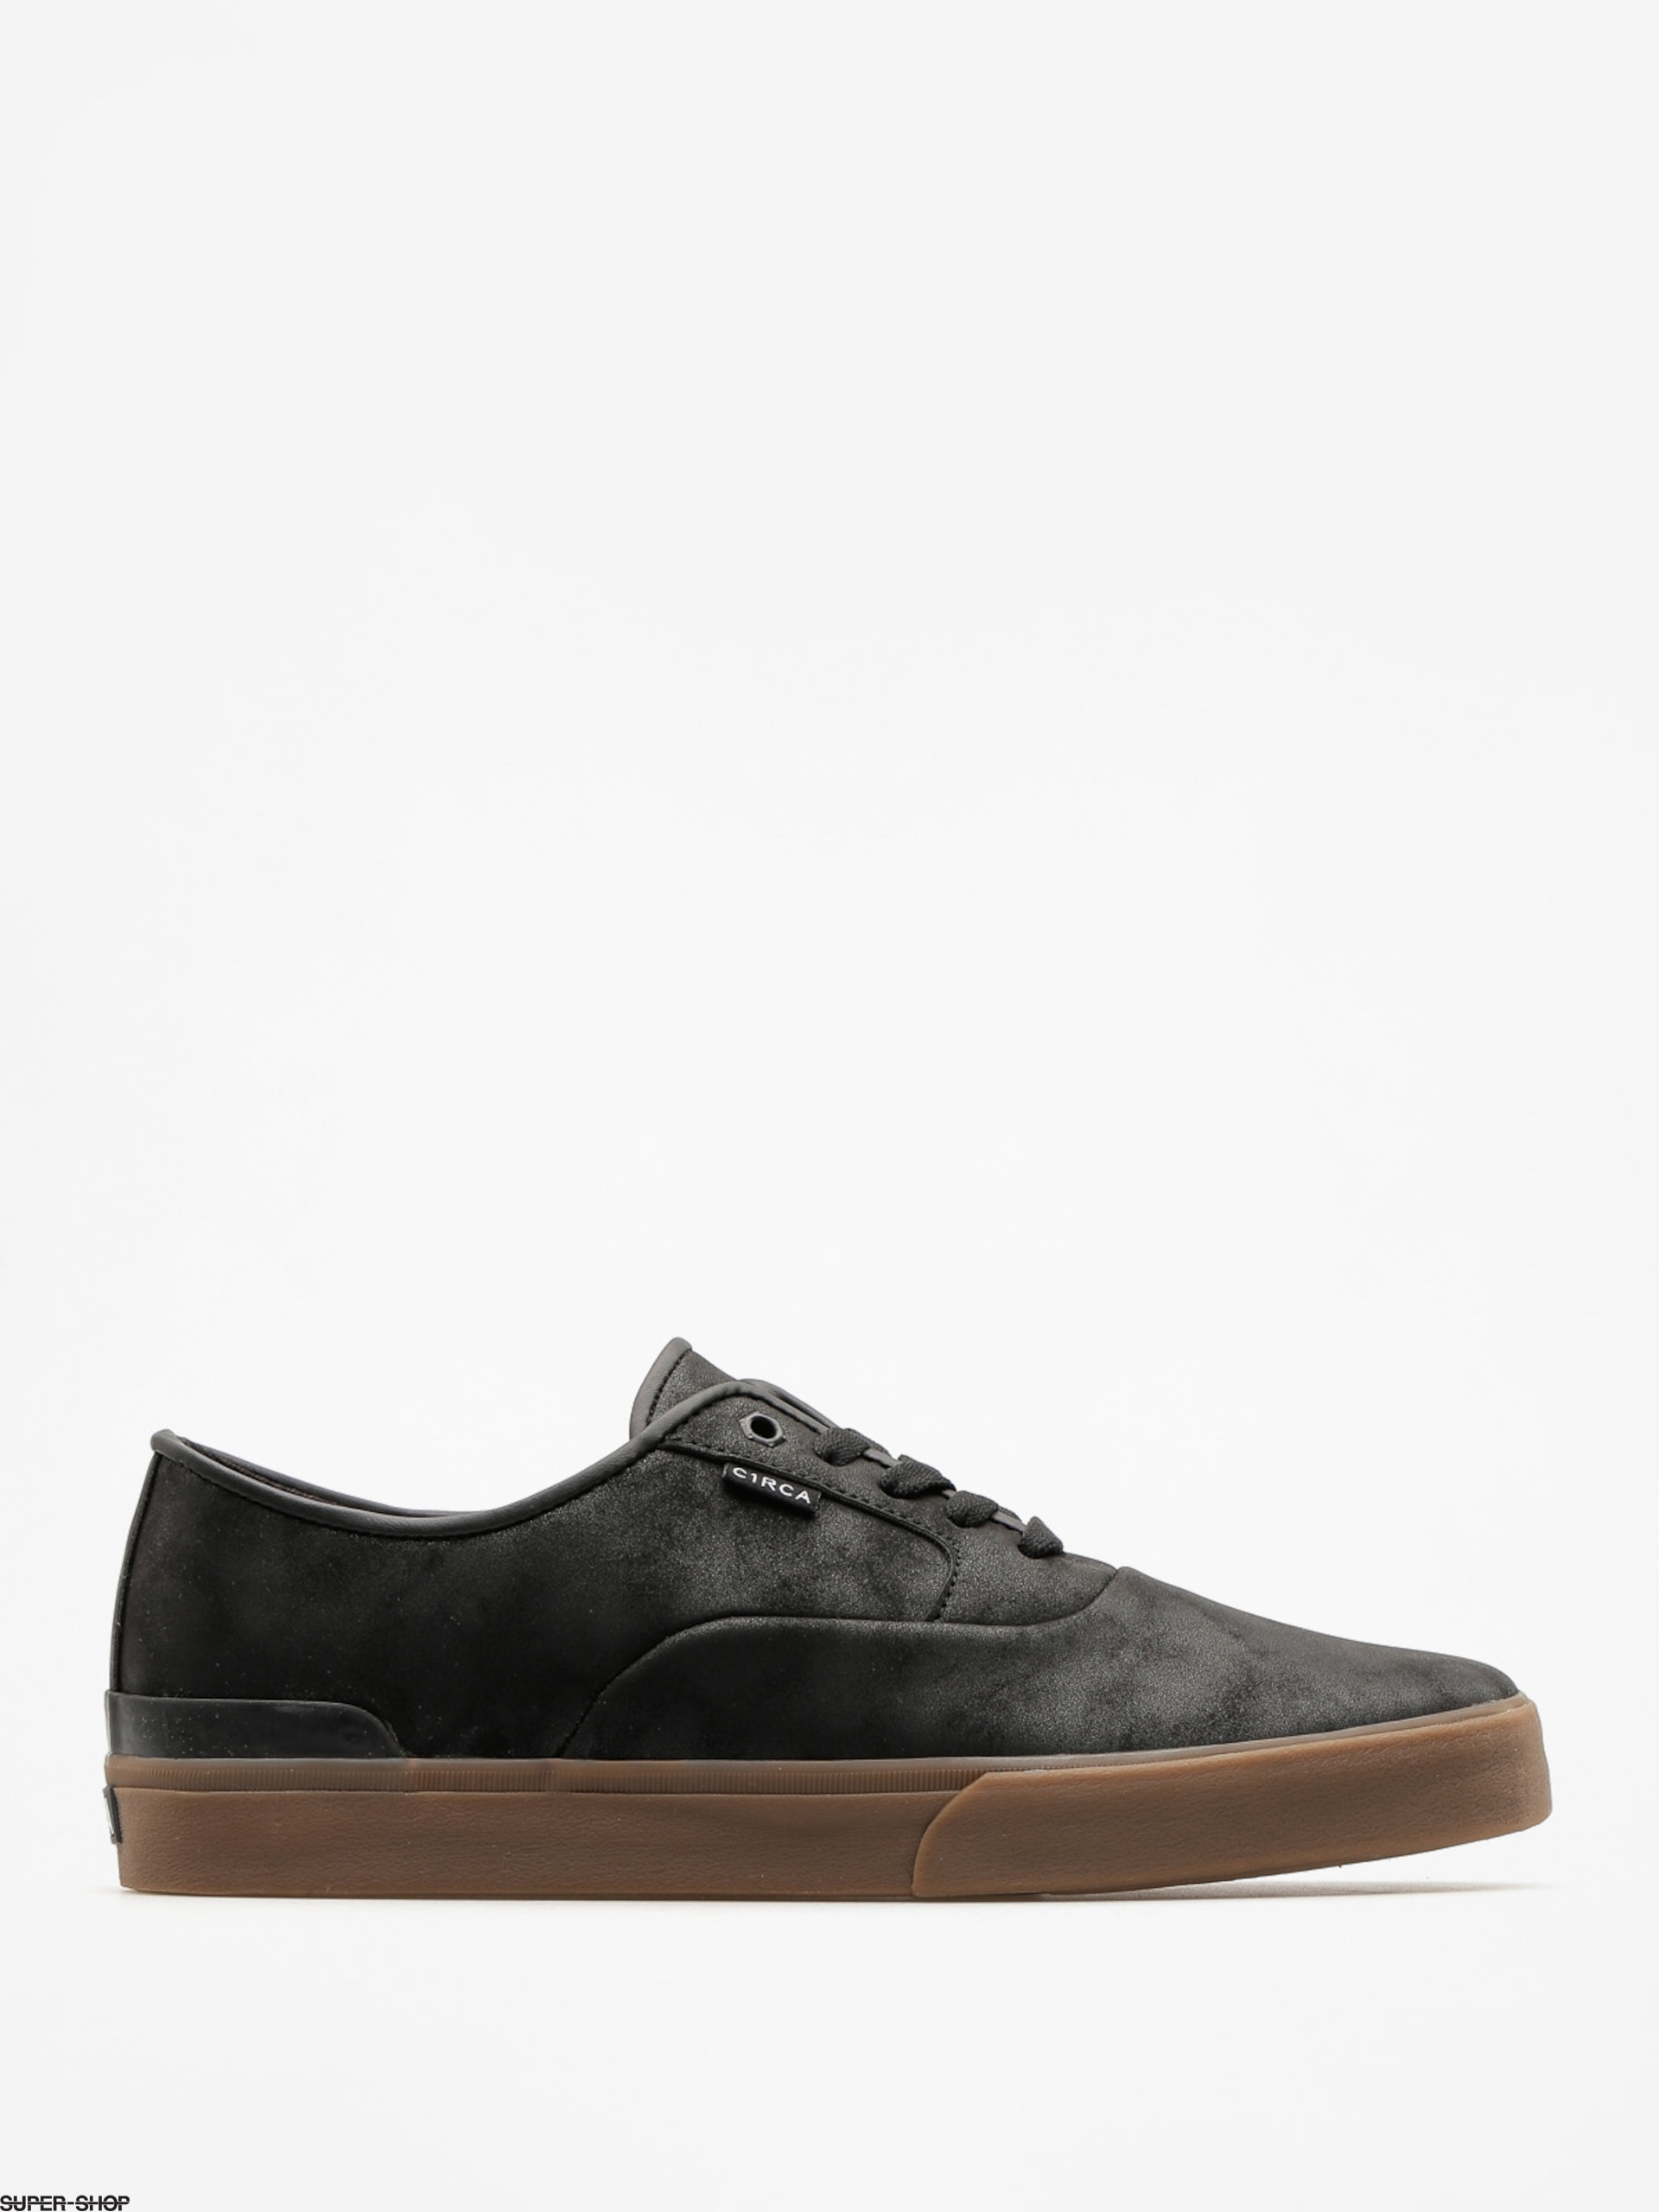 Circa Shoes Kingsley (black/gum)